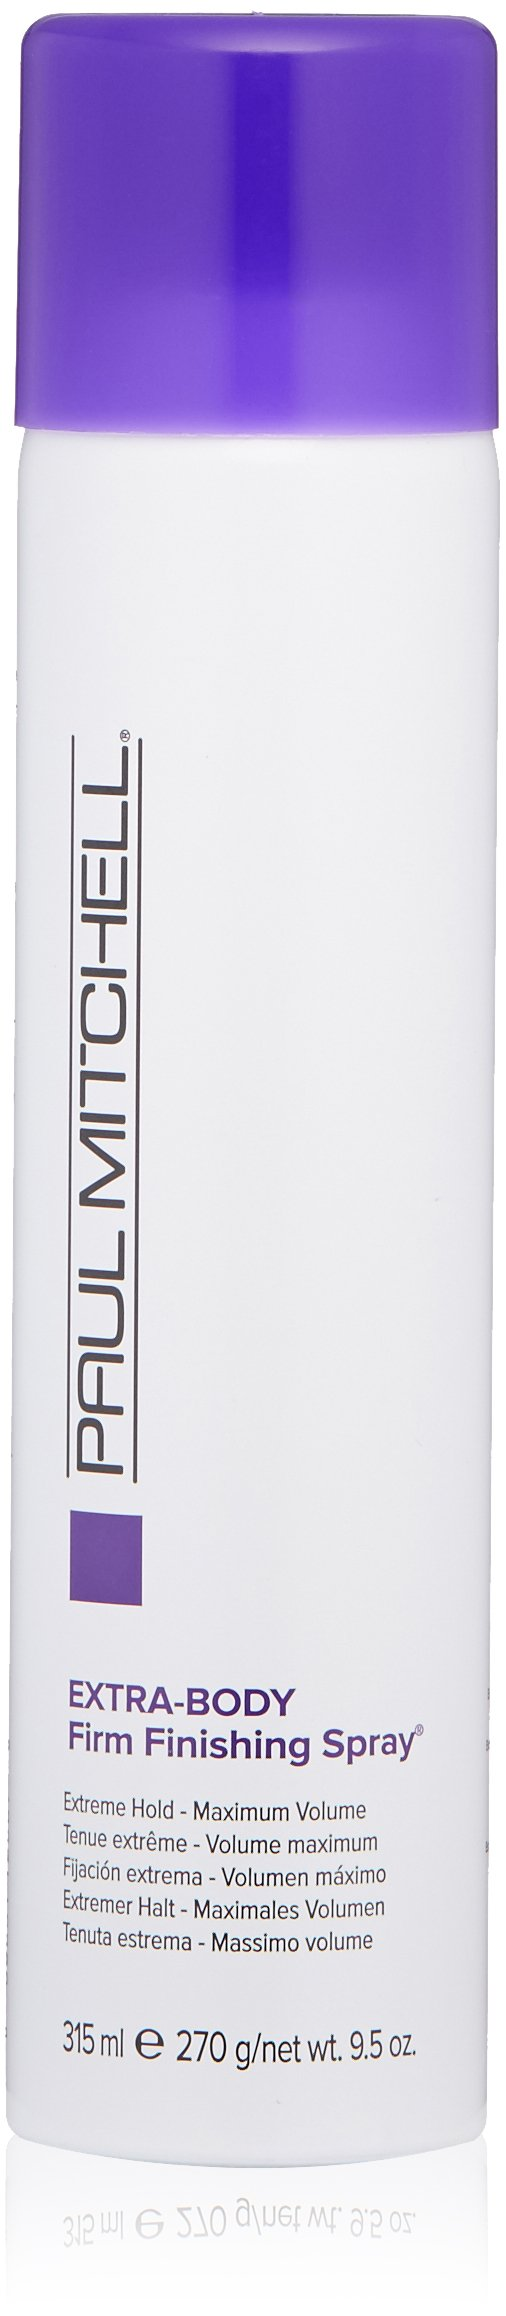 Paul Mitchell Extra-Body Firm Finishing Spray, 9.5 Oz by Paul Mitchell